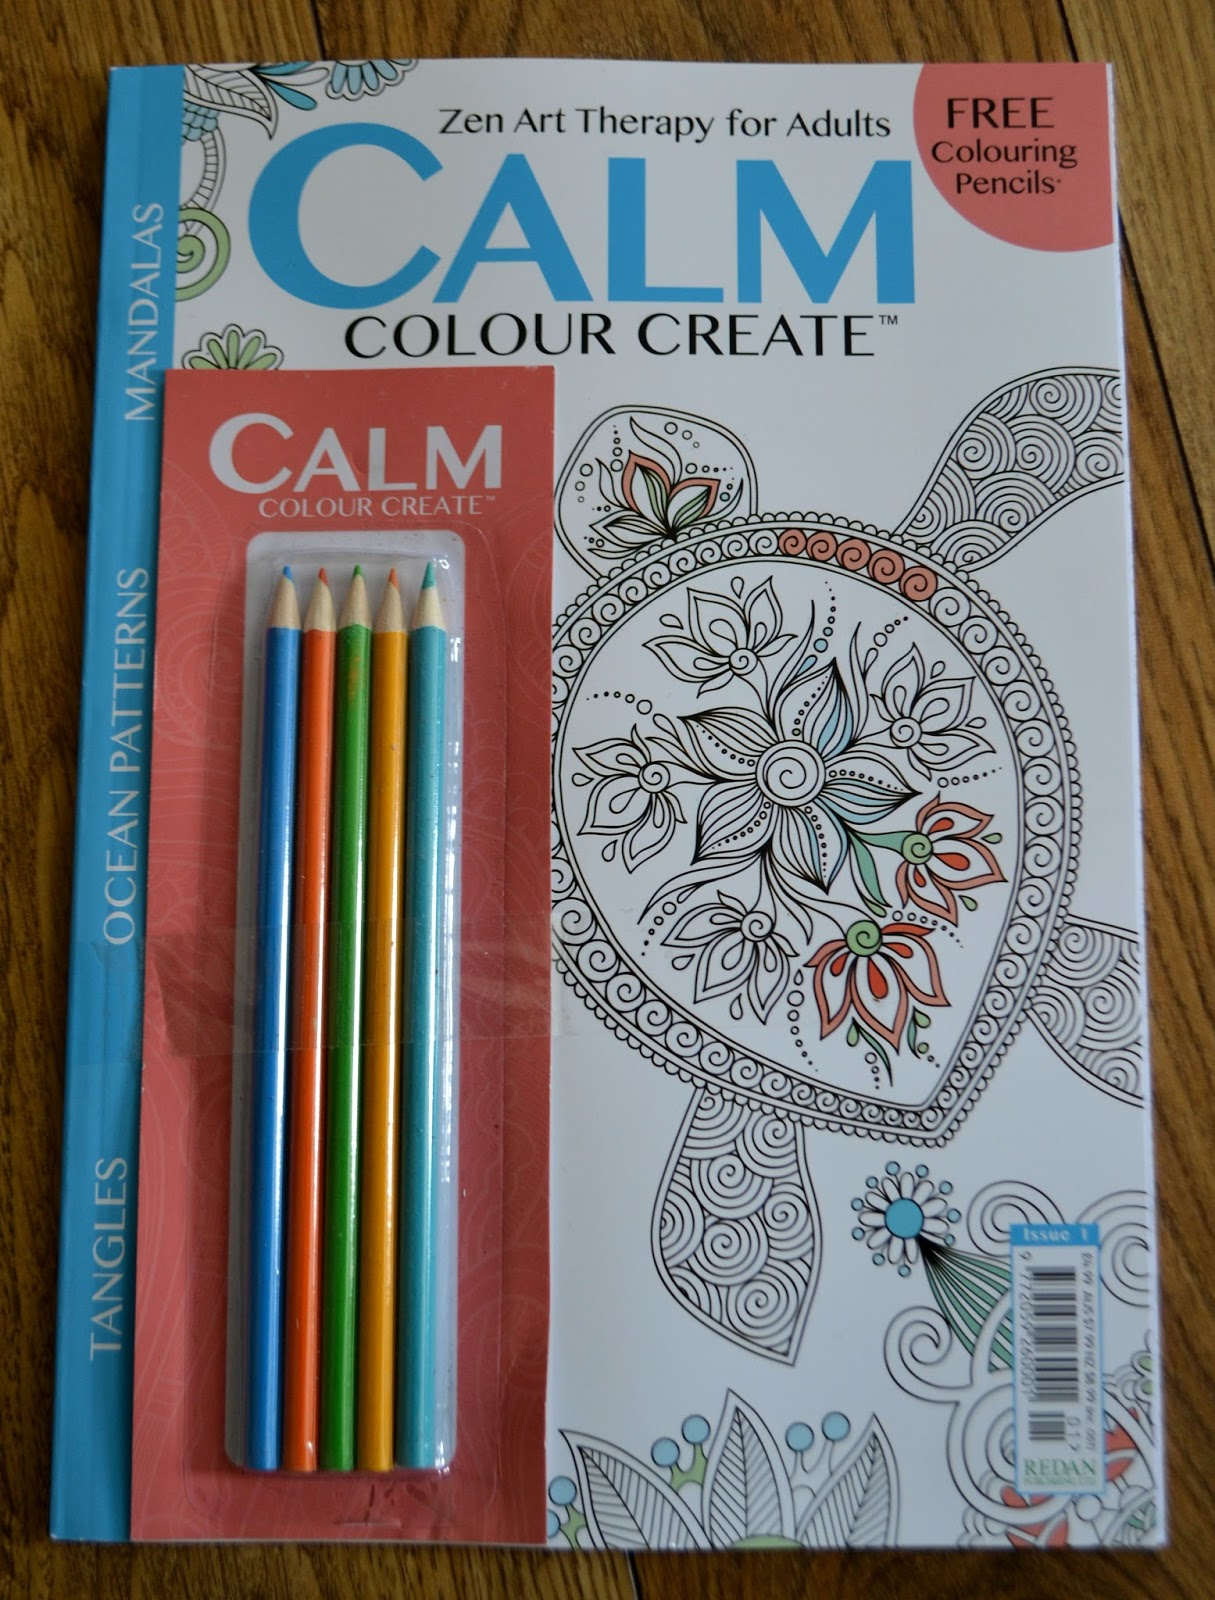 Colour zen review - Calm Colour Create Magazine Review Giveaway